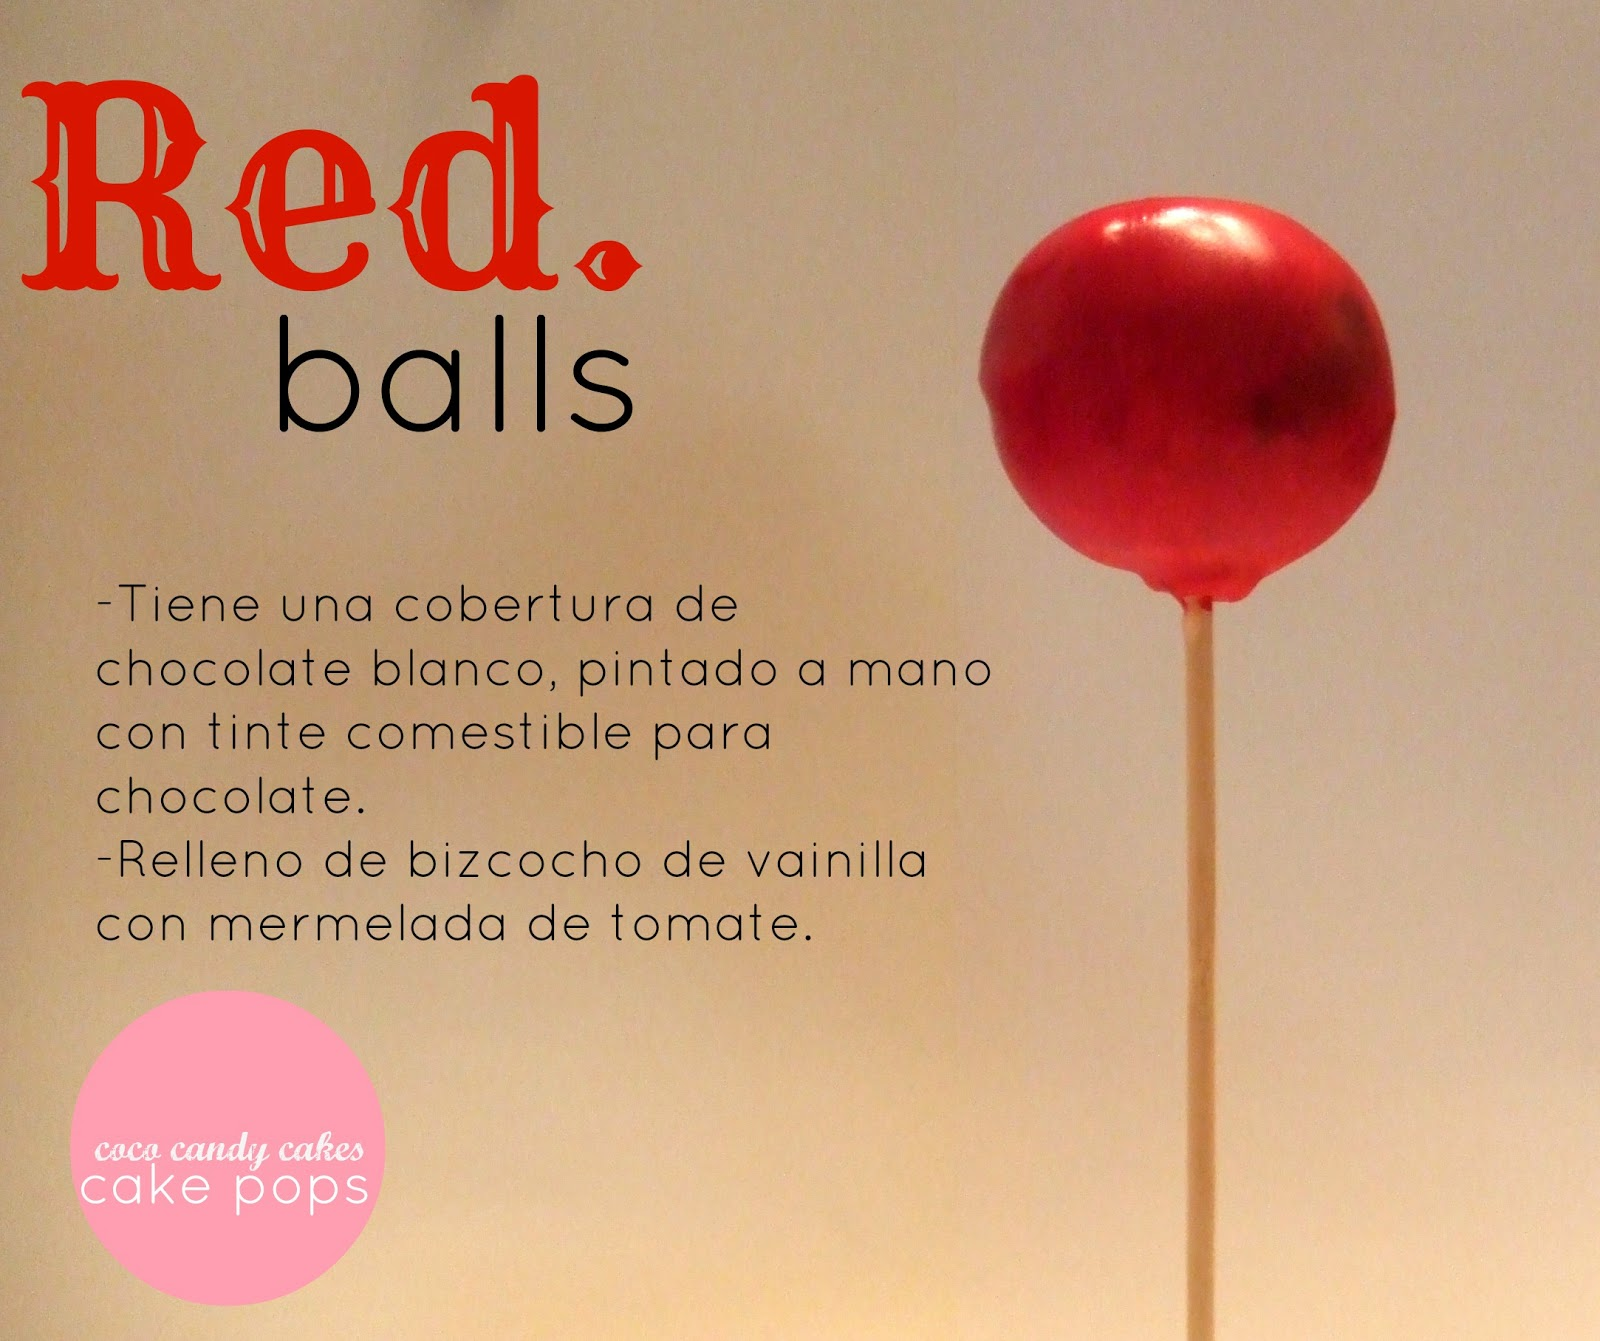 Coco candy cakes three balls cake pops new colection for Cobertura para cake pops